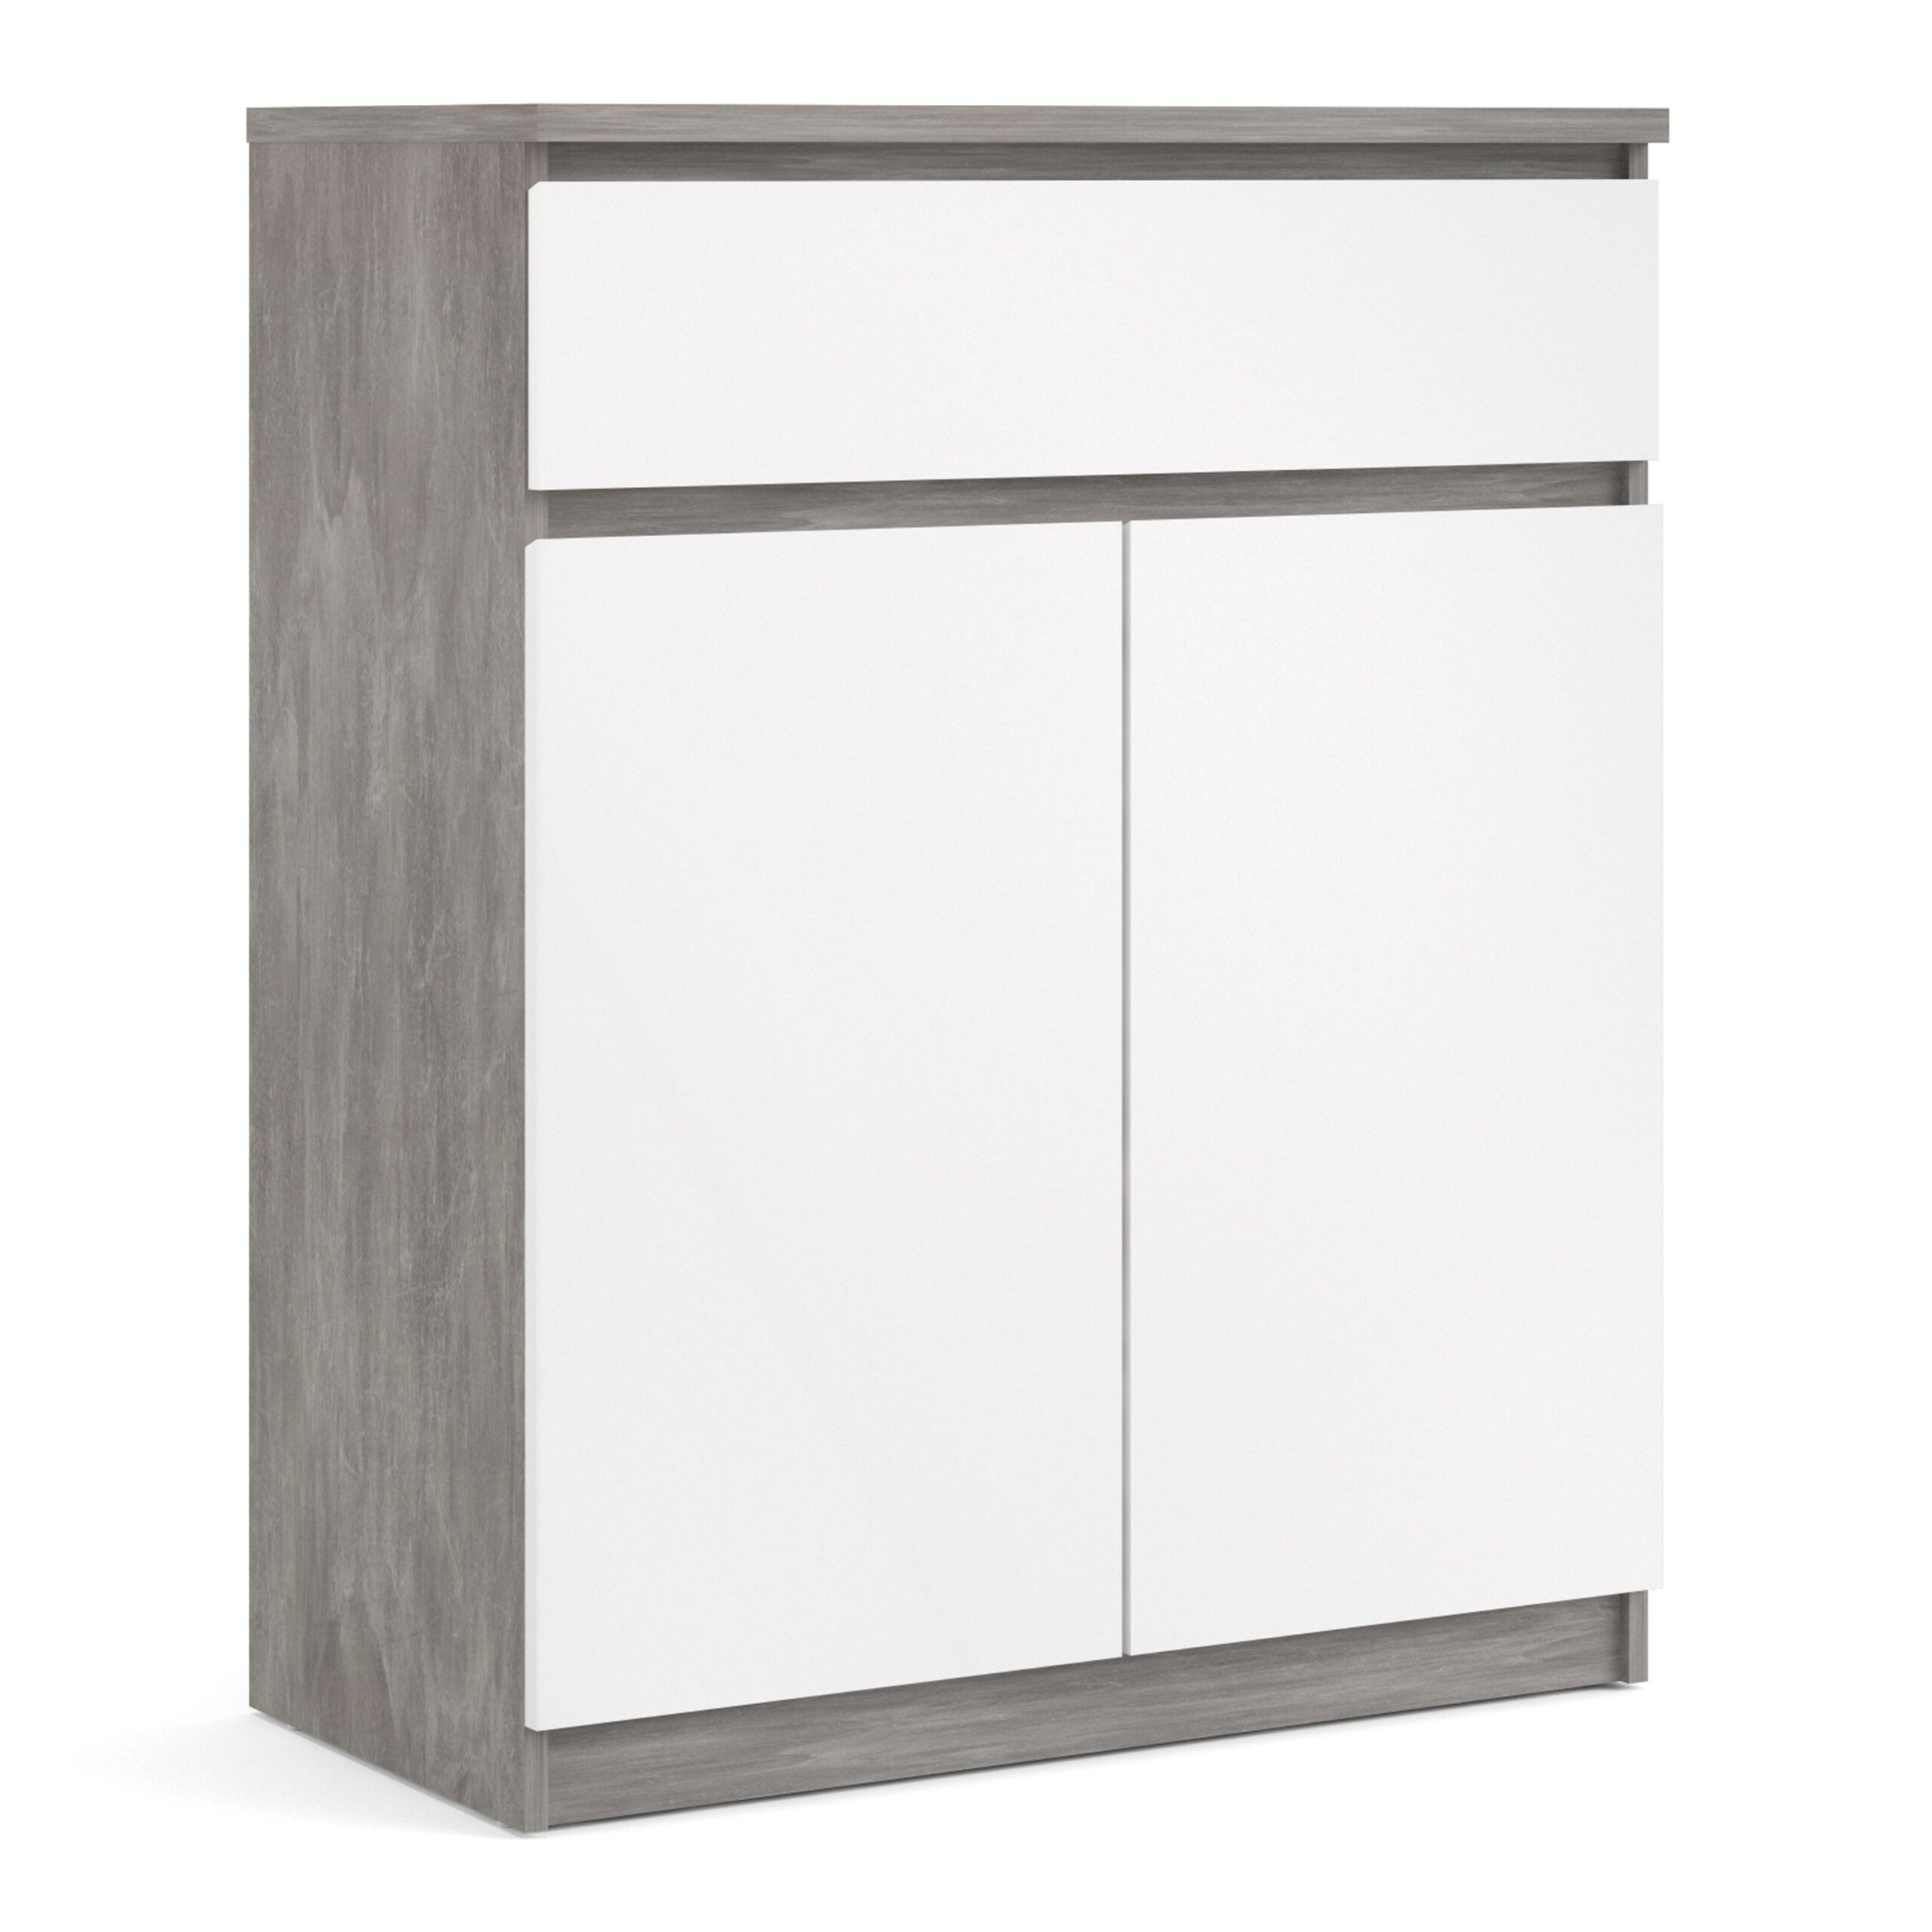 Nati Sideboard - 1 Drawer 2 Doors in Concrete and White High Gloss